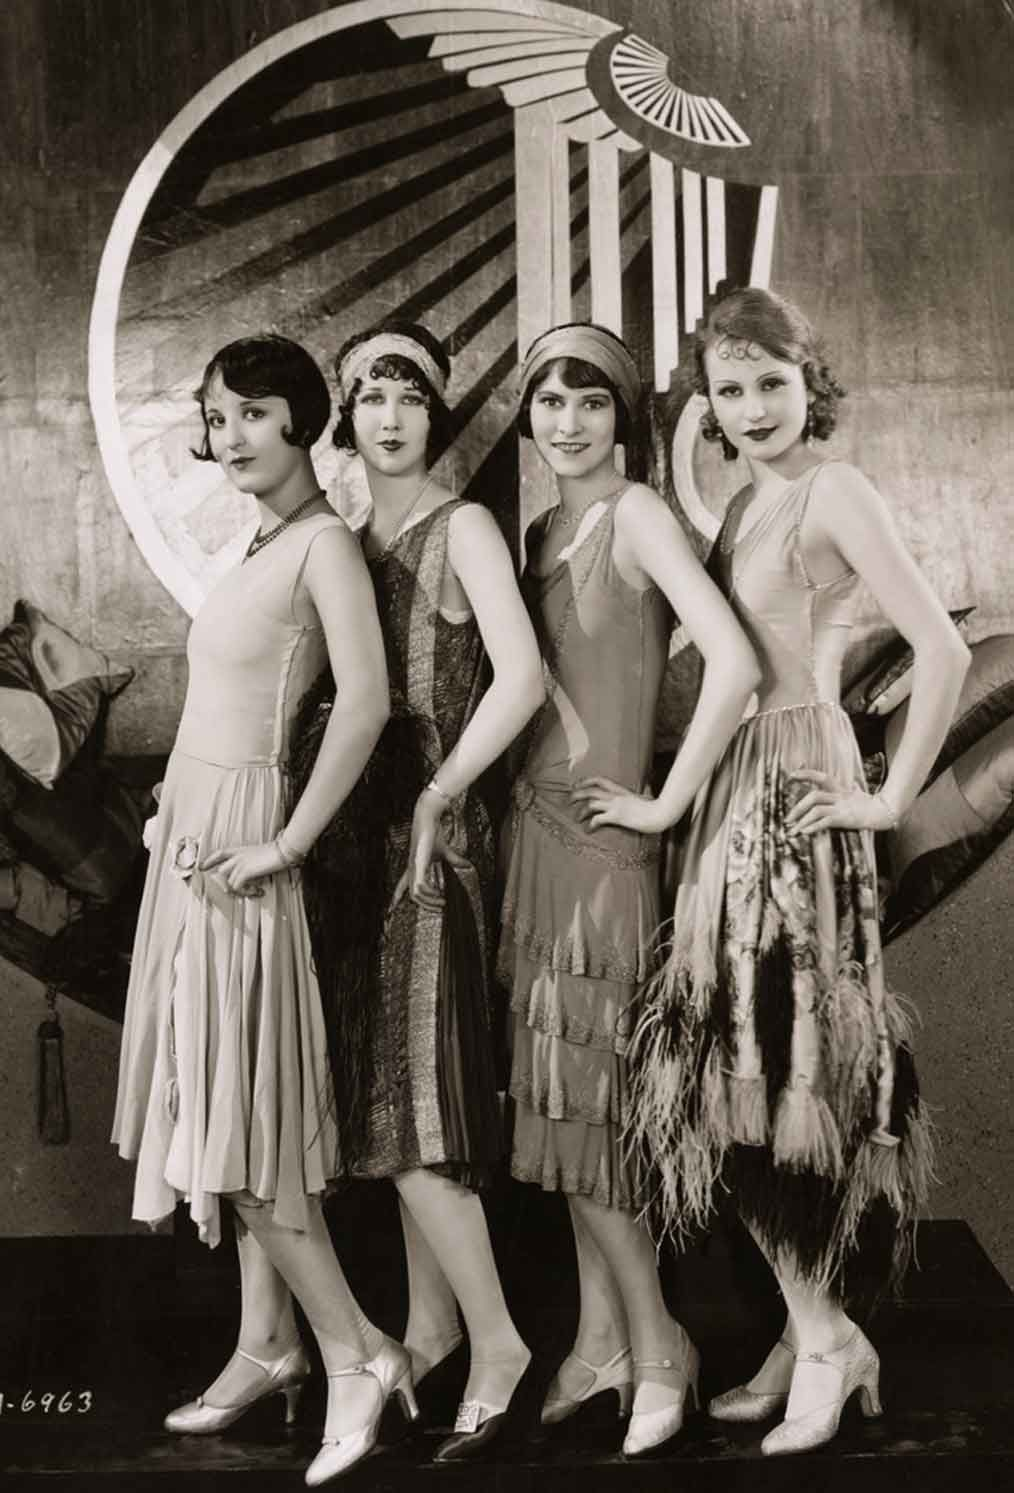 History of Women's Fashion, 1920-1929